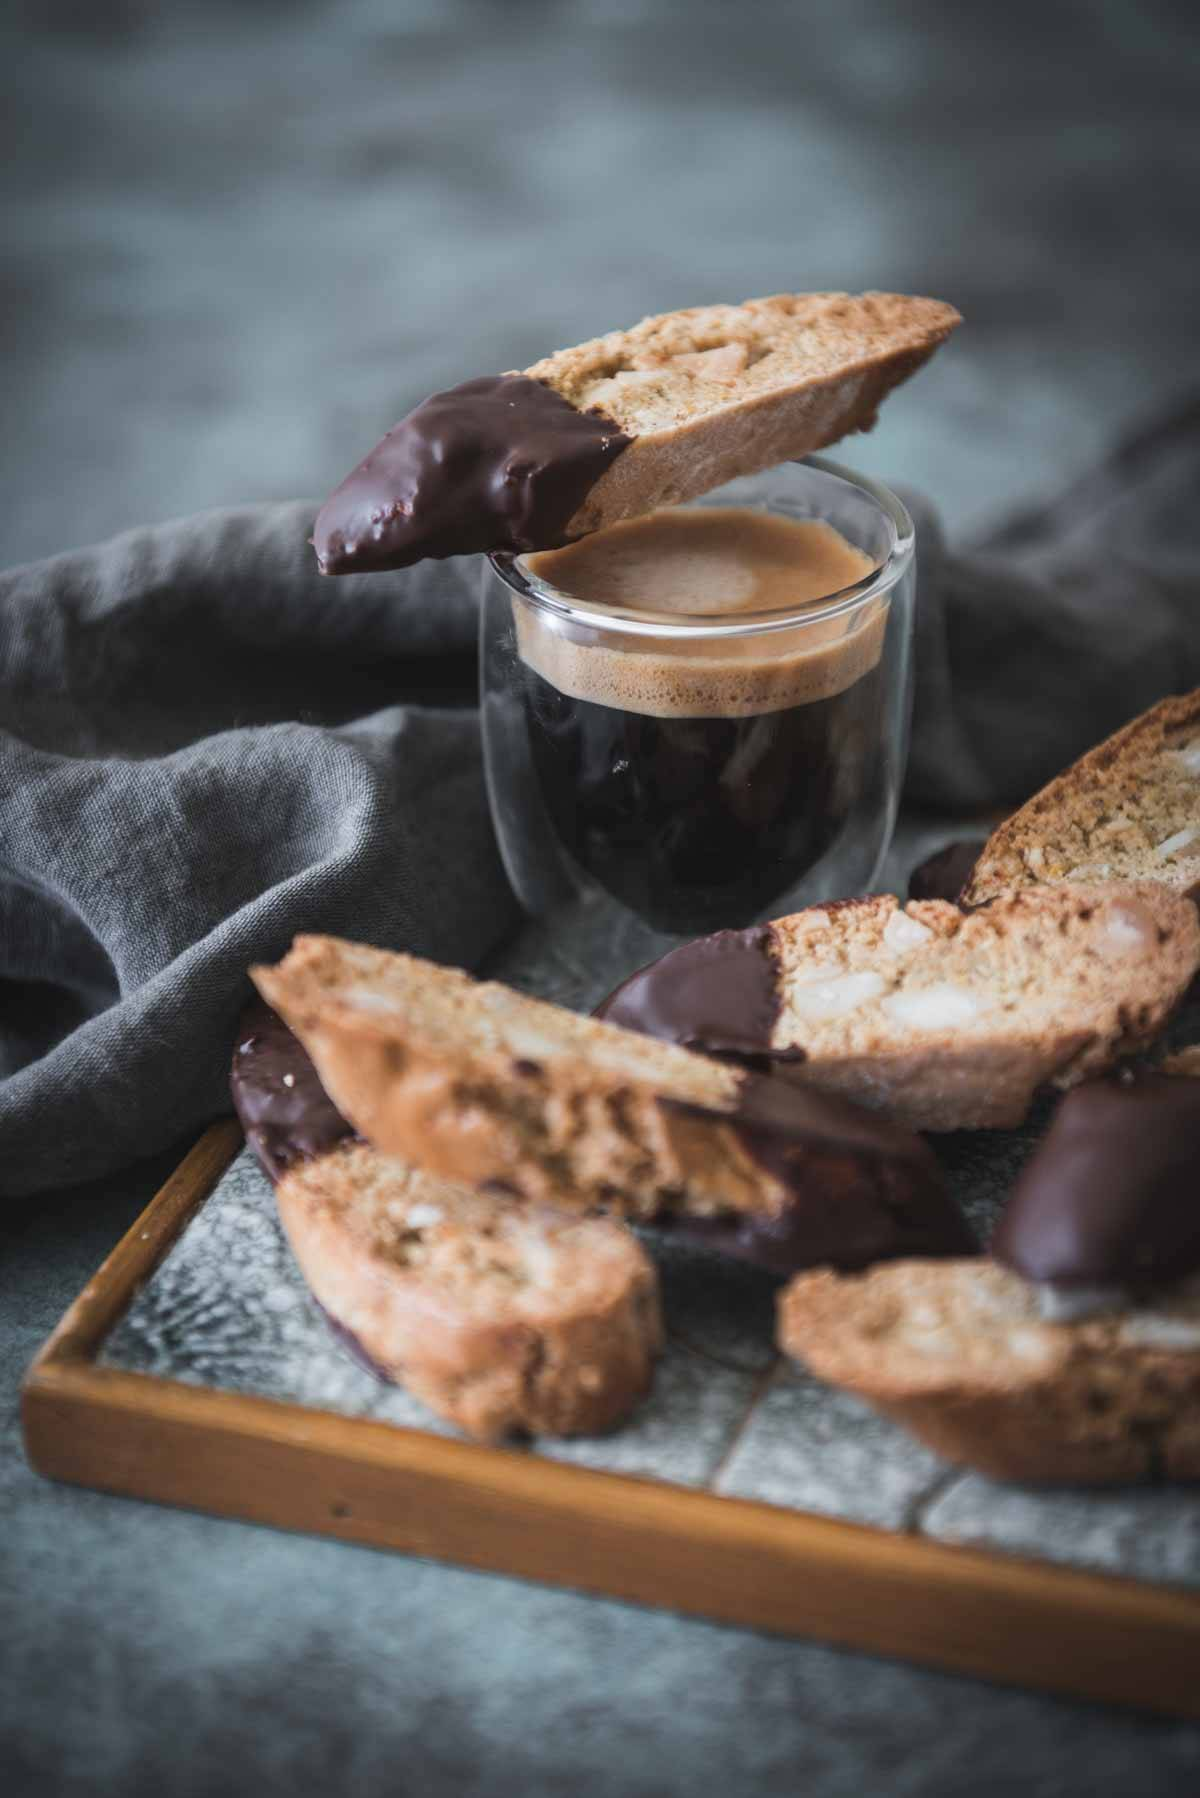 Chocolate Cardamom and Macadamia Cantucci | Chew Town Food Blog